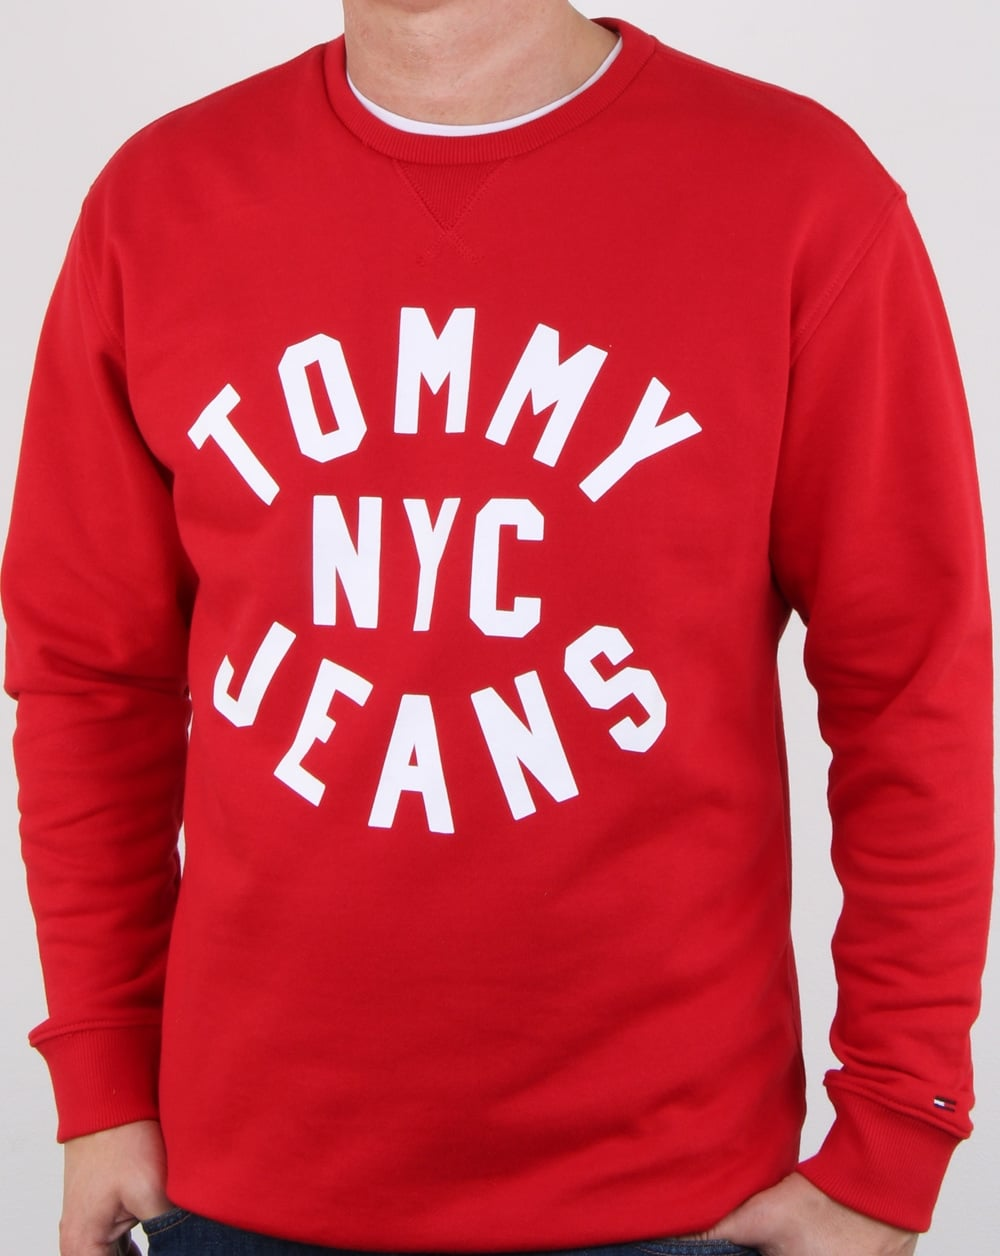 e80aa5e1 Tommy Hilfiger Nyc Logo Sweatshirt Racing Red, Mens, Sweatshirt, Crew